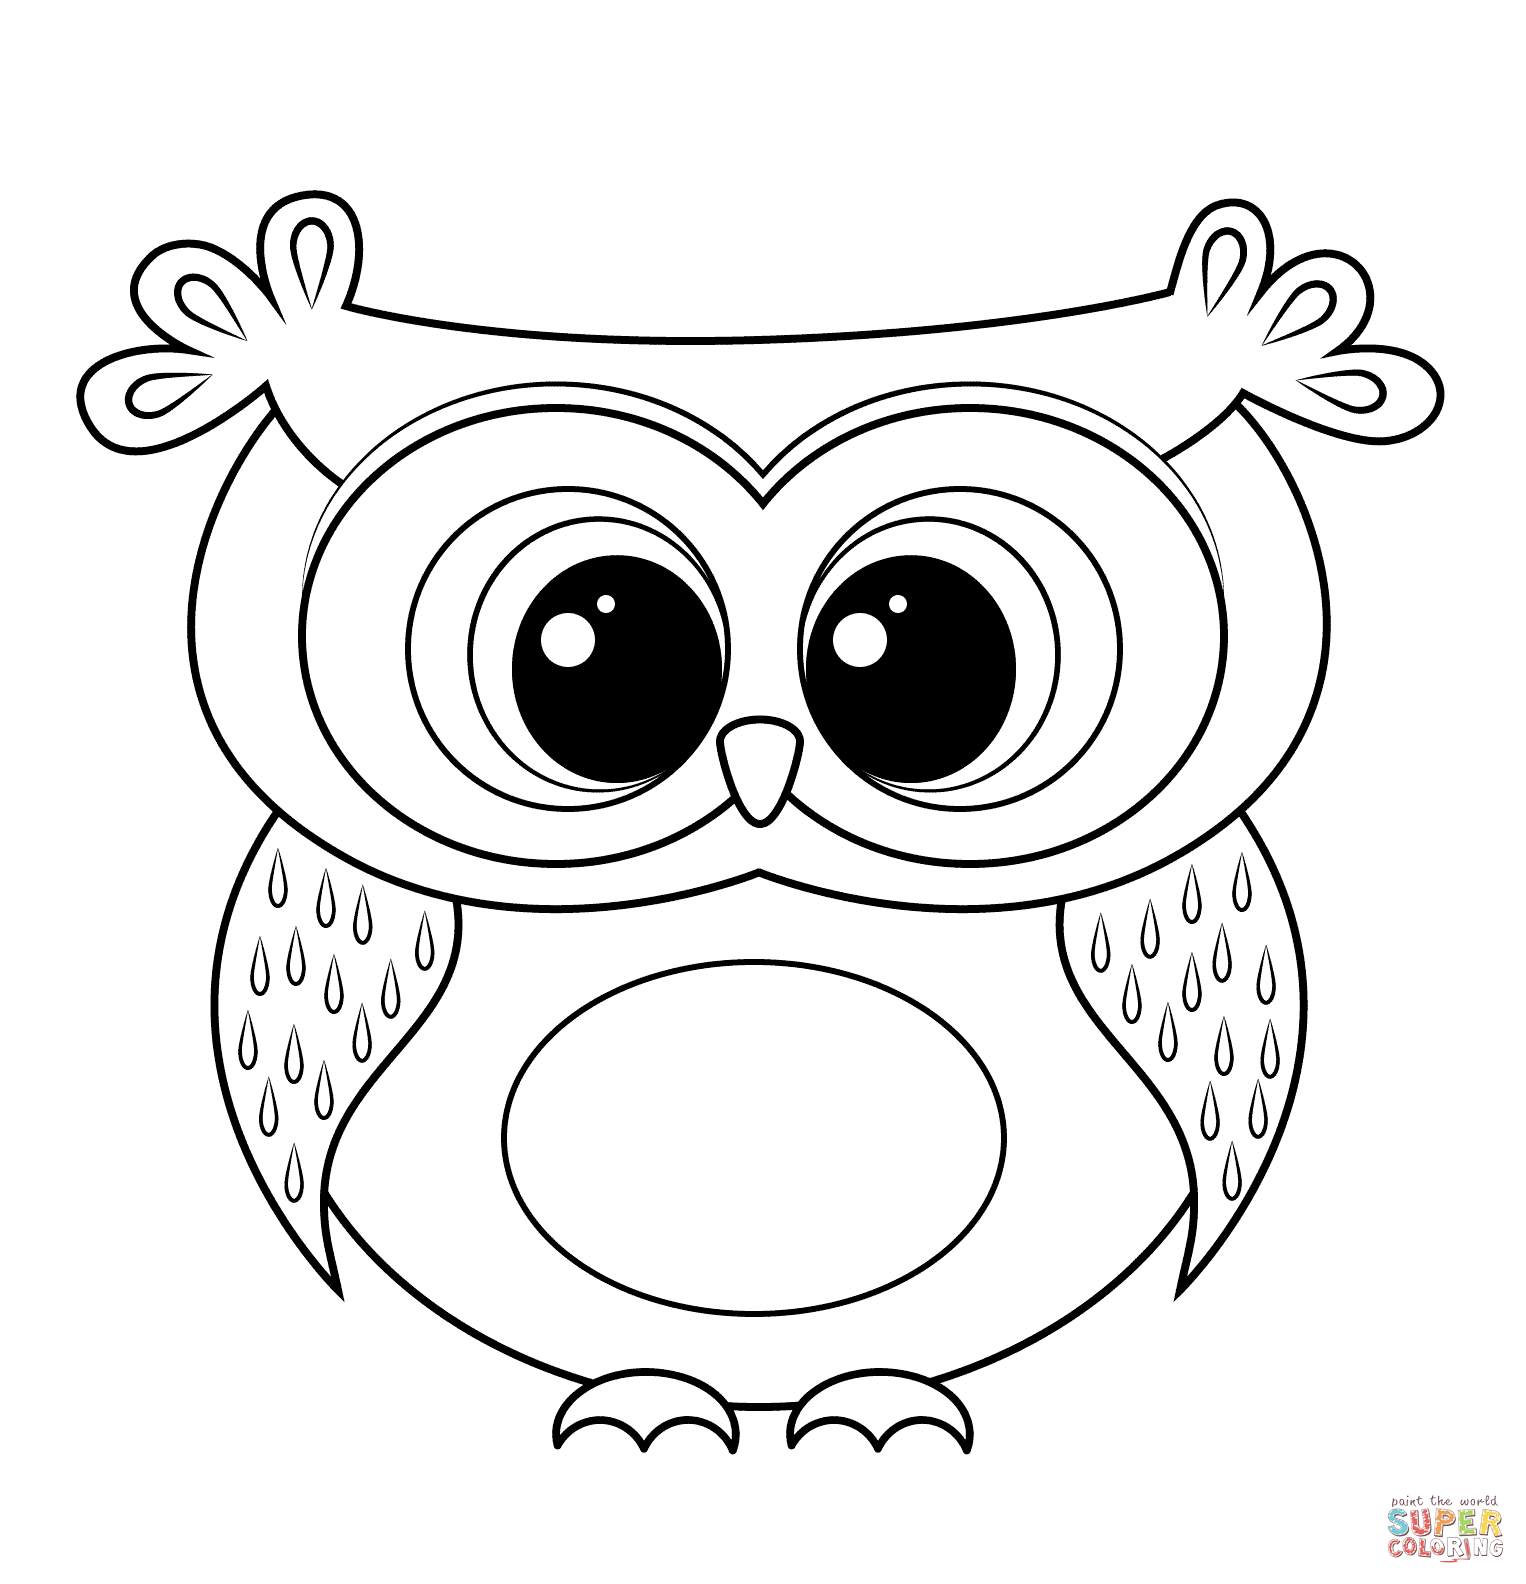 Free Printable Owl Coloring Sheets